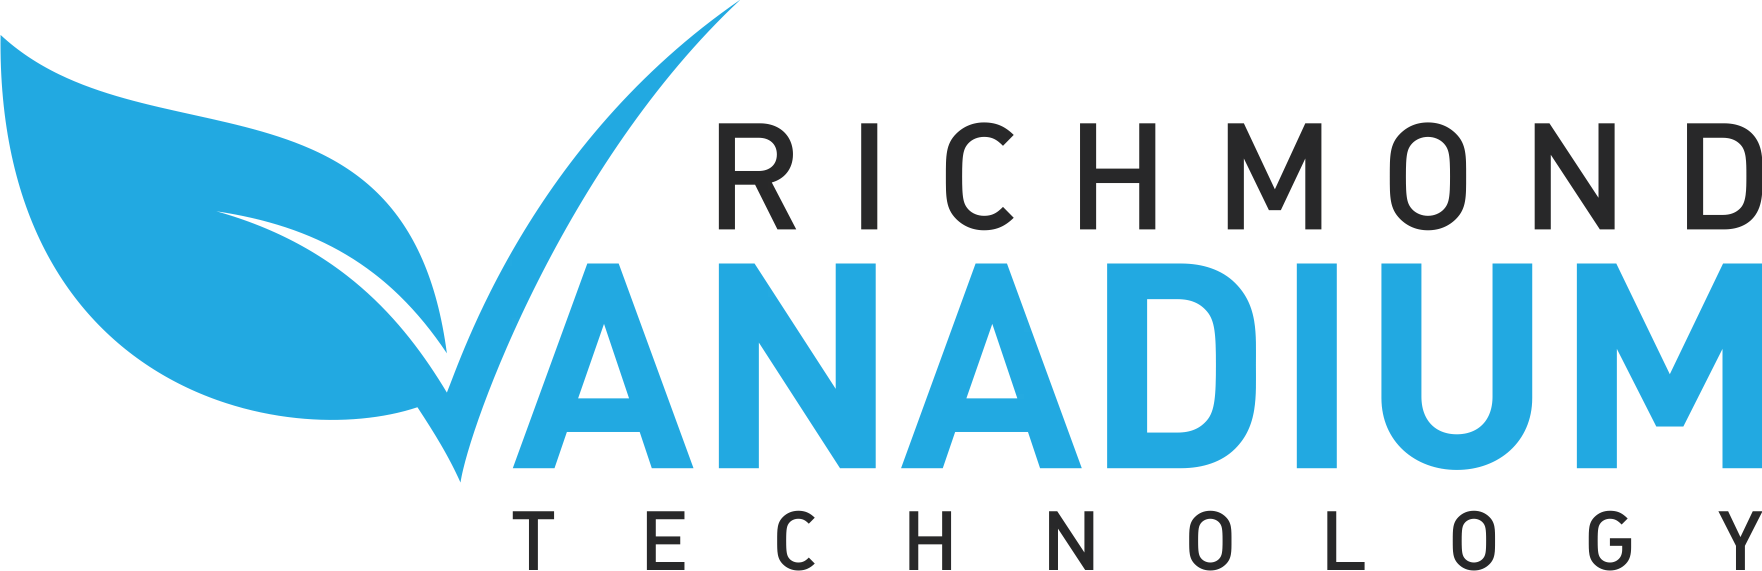 Richmond Vanadium Technology